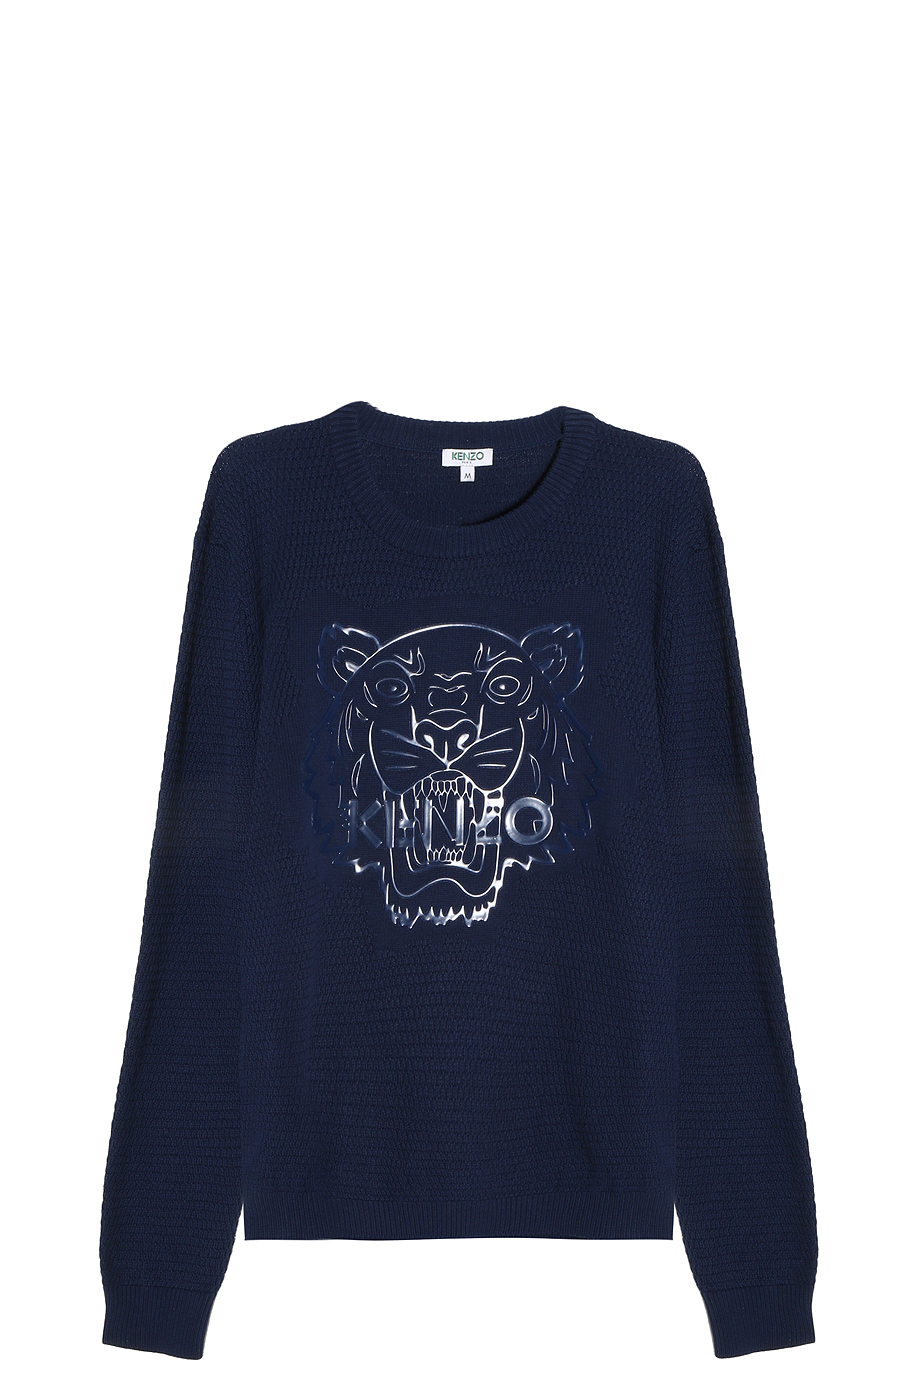 kenzo iconic tiger sweater in blue for men lyst. Black Bedroom Furniture Sets. Home Design Ideas